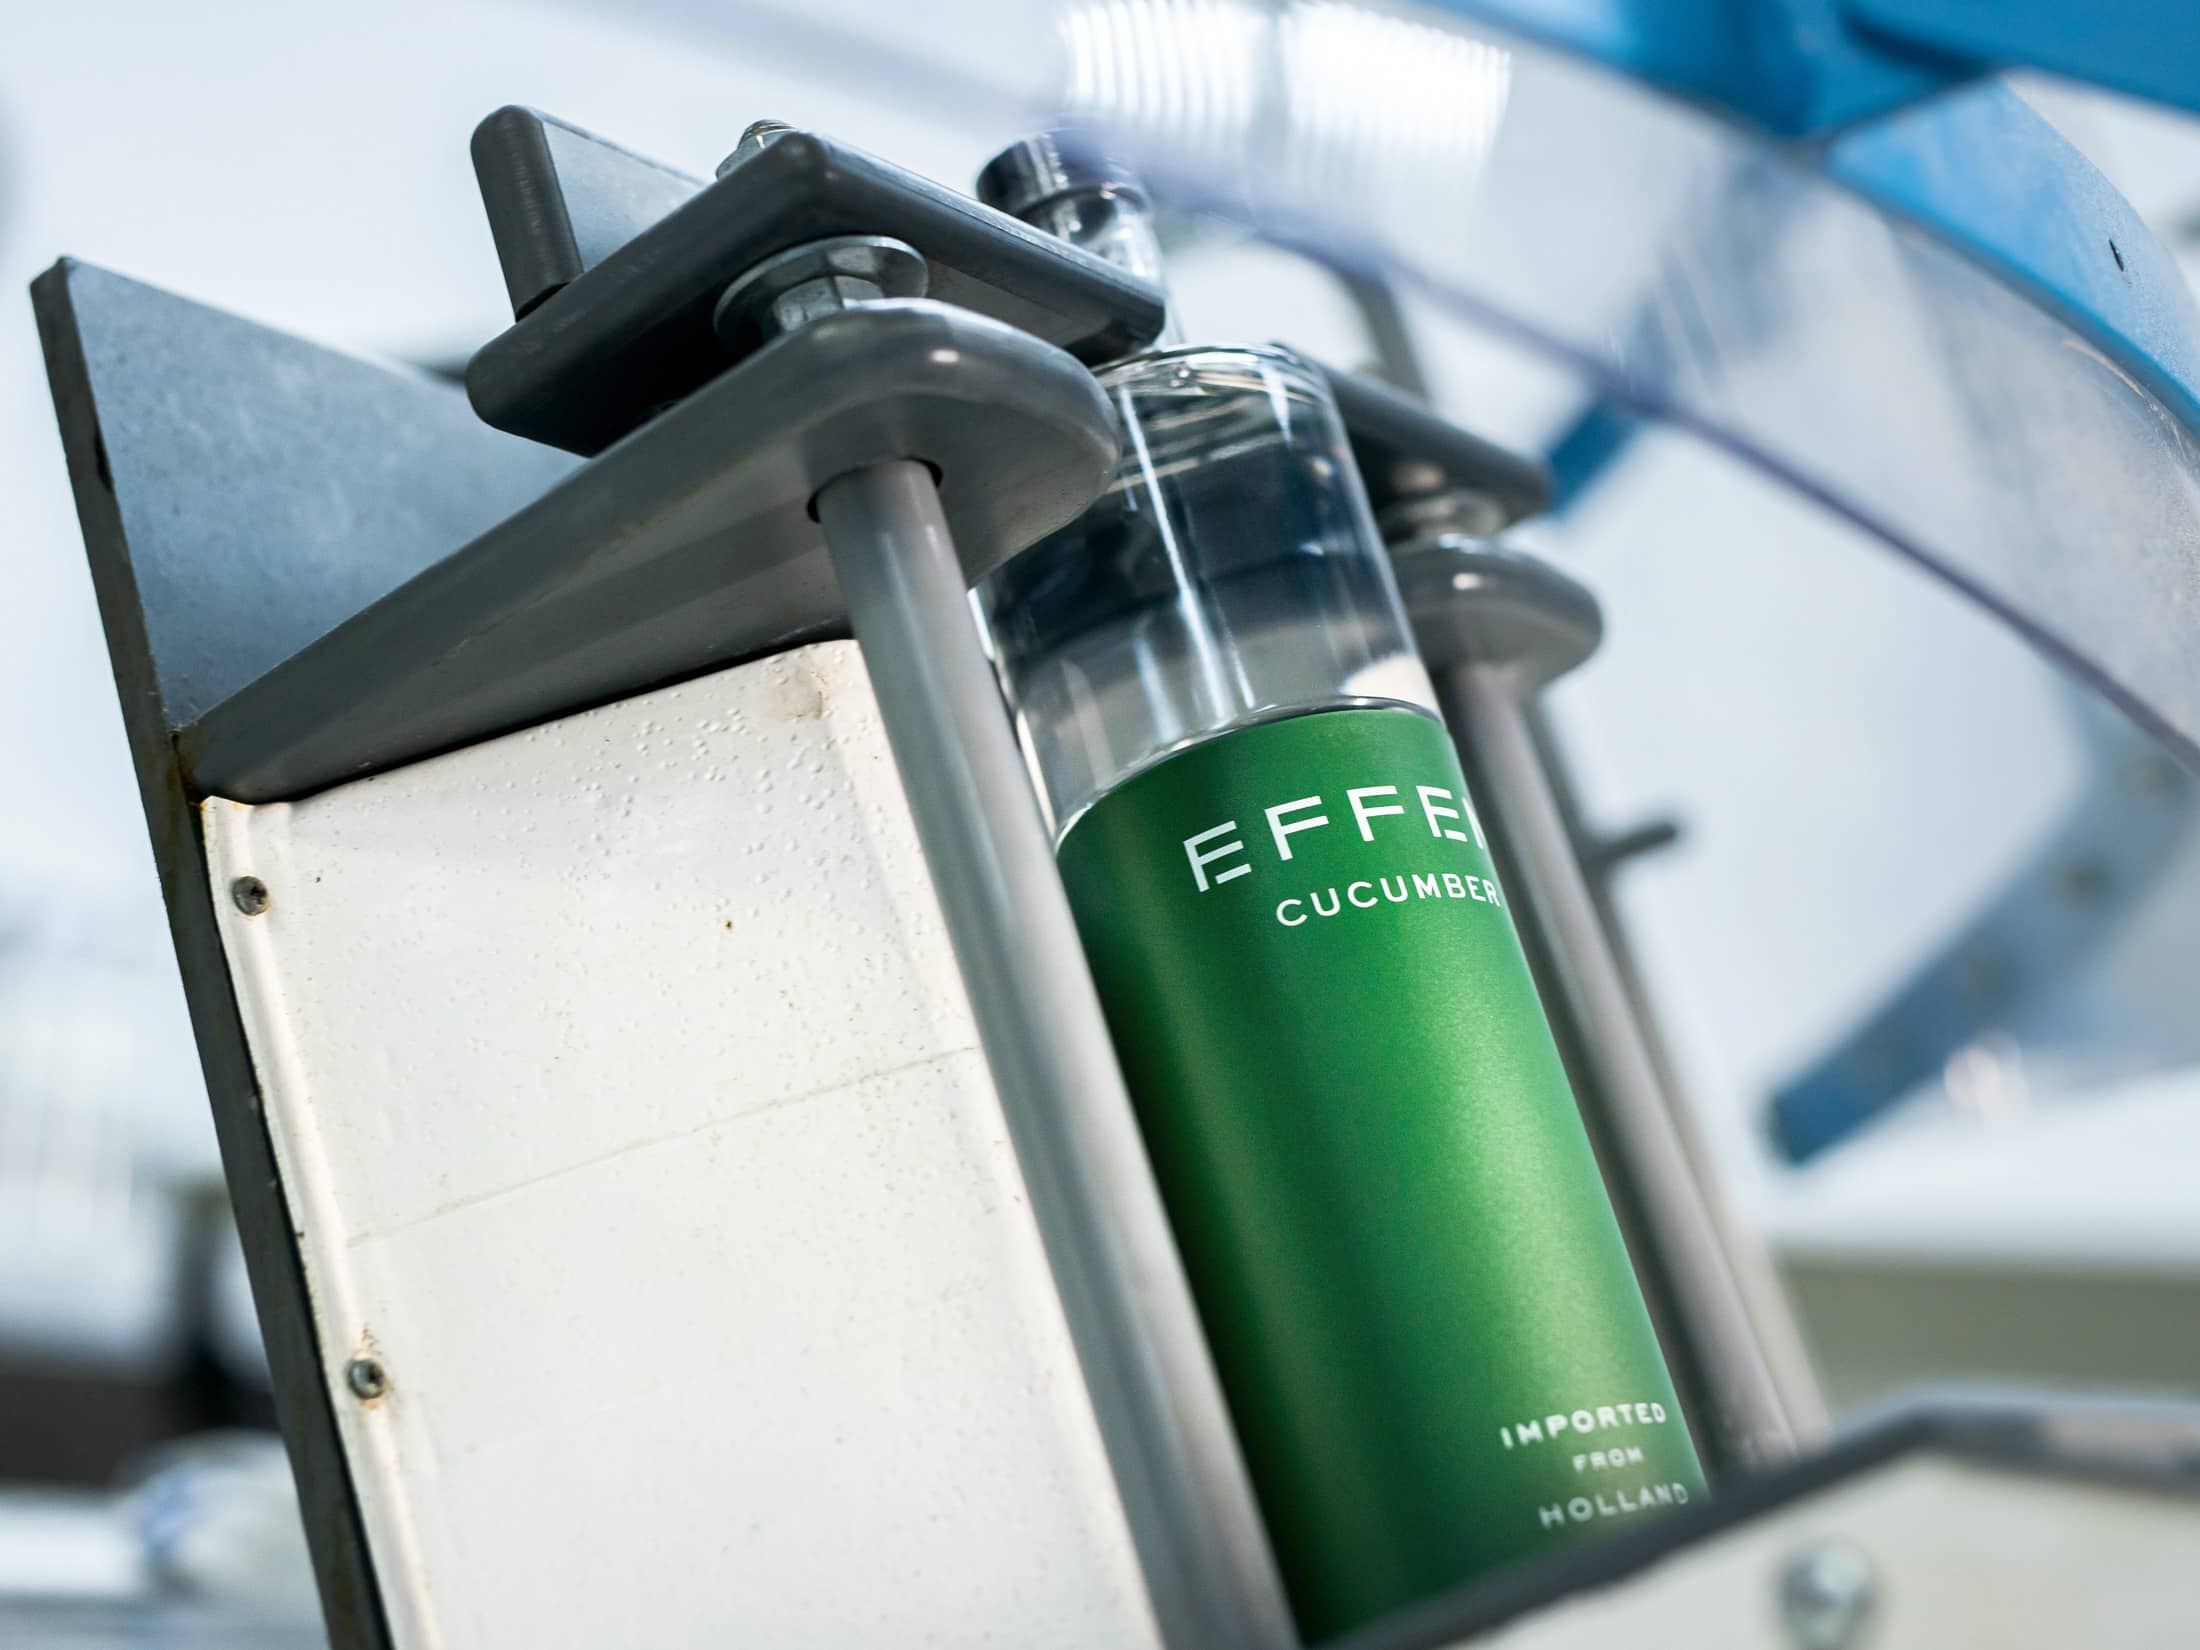 EFFEN Cucumber Vodka: a perfectly distilled vodka from the Netherlands.